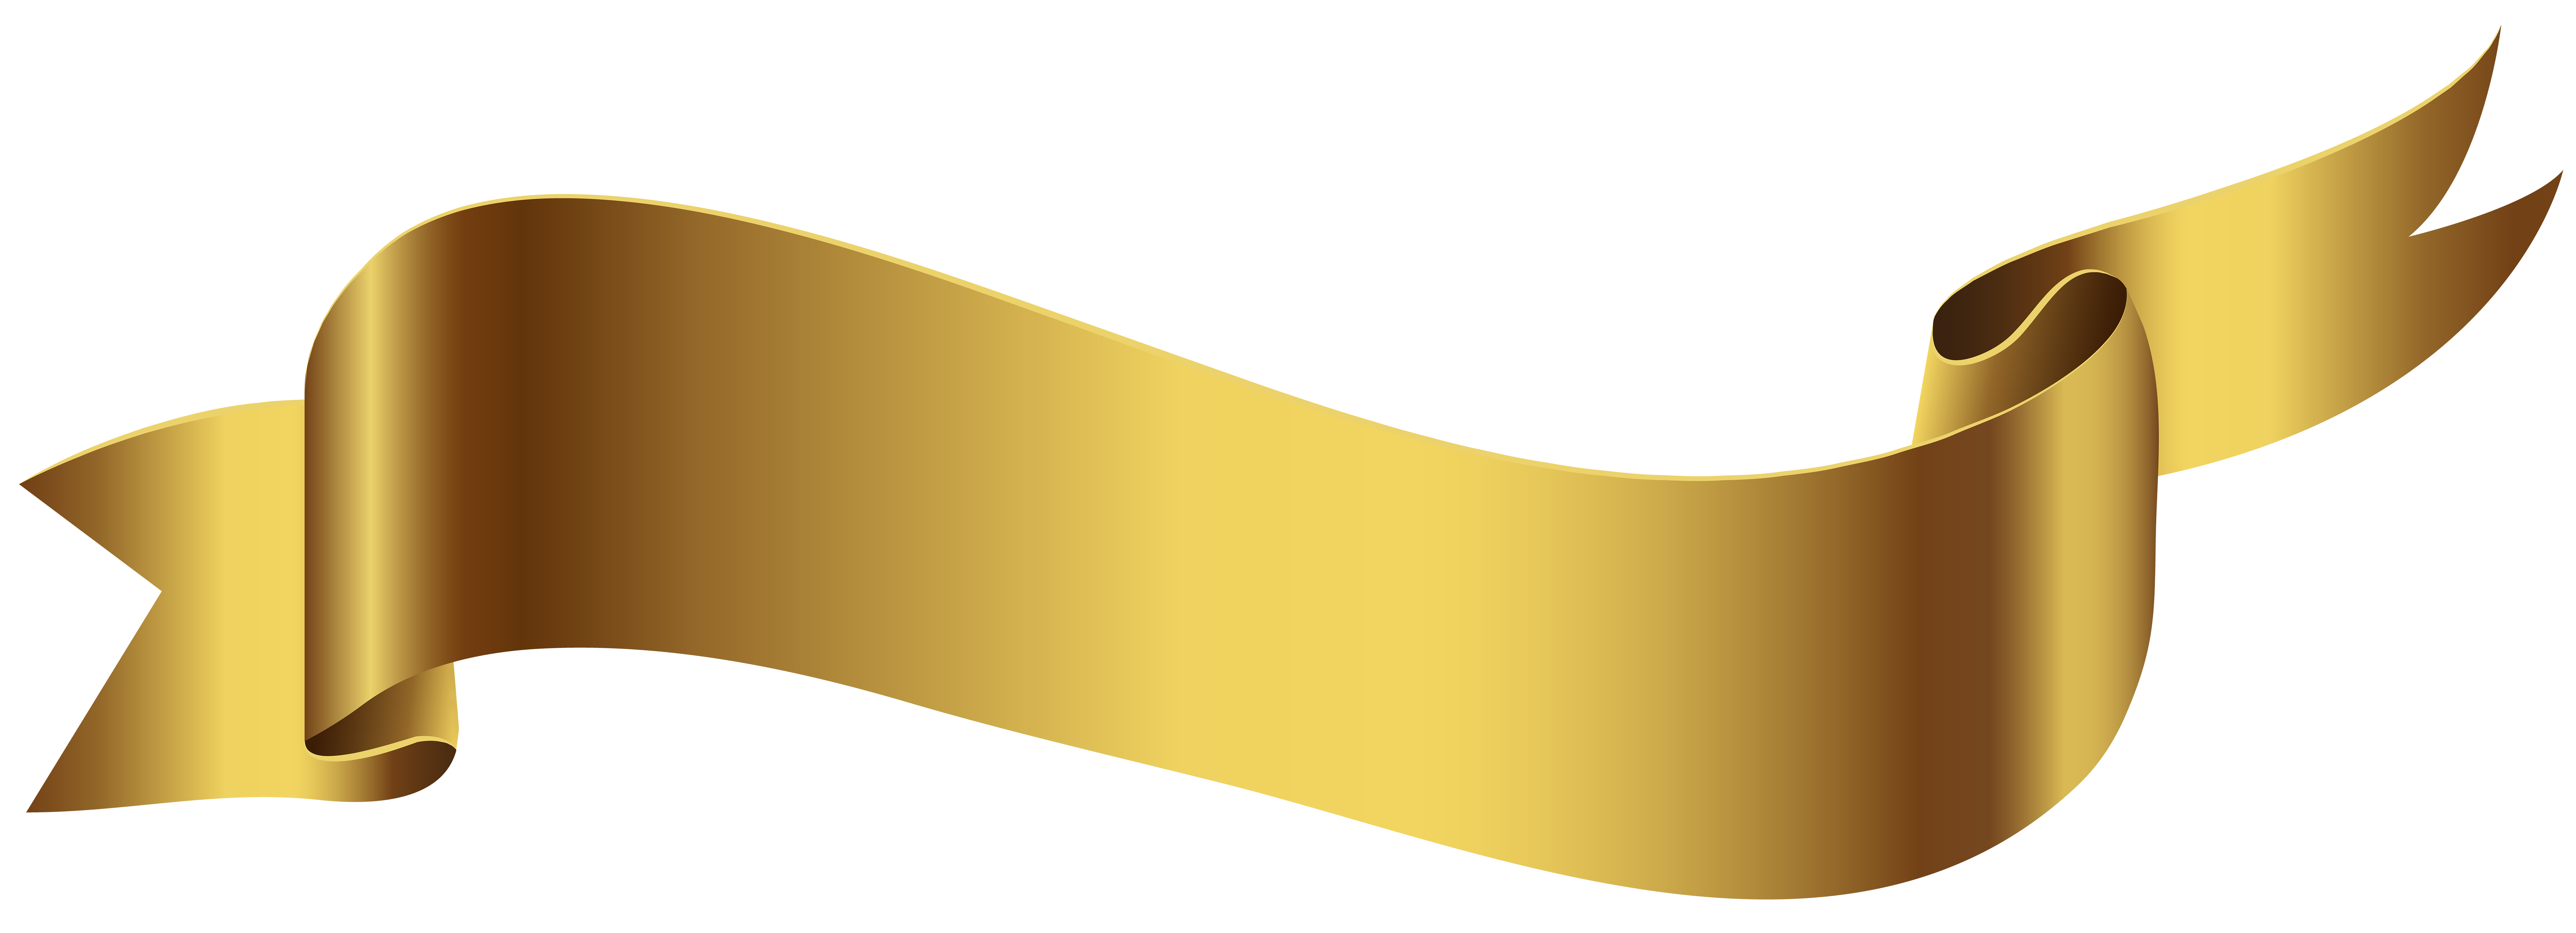 Gold Banner PNG Transparent Image.